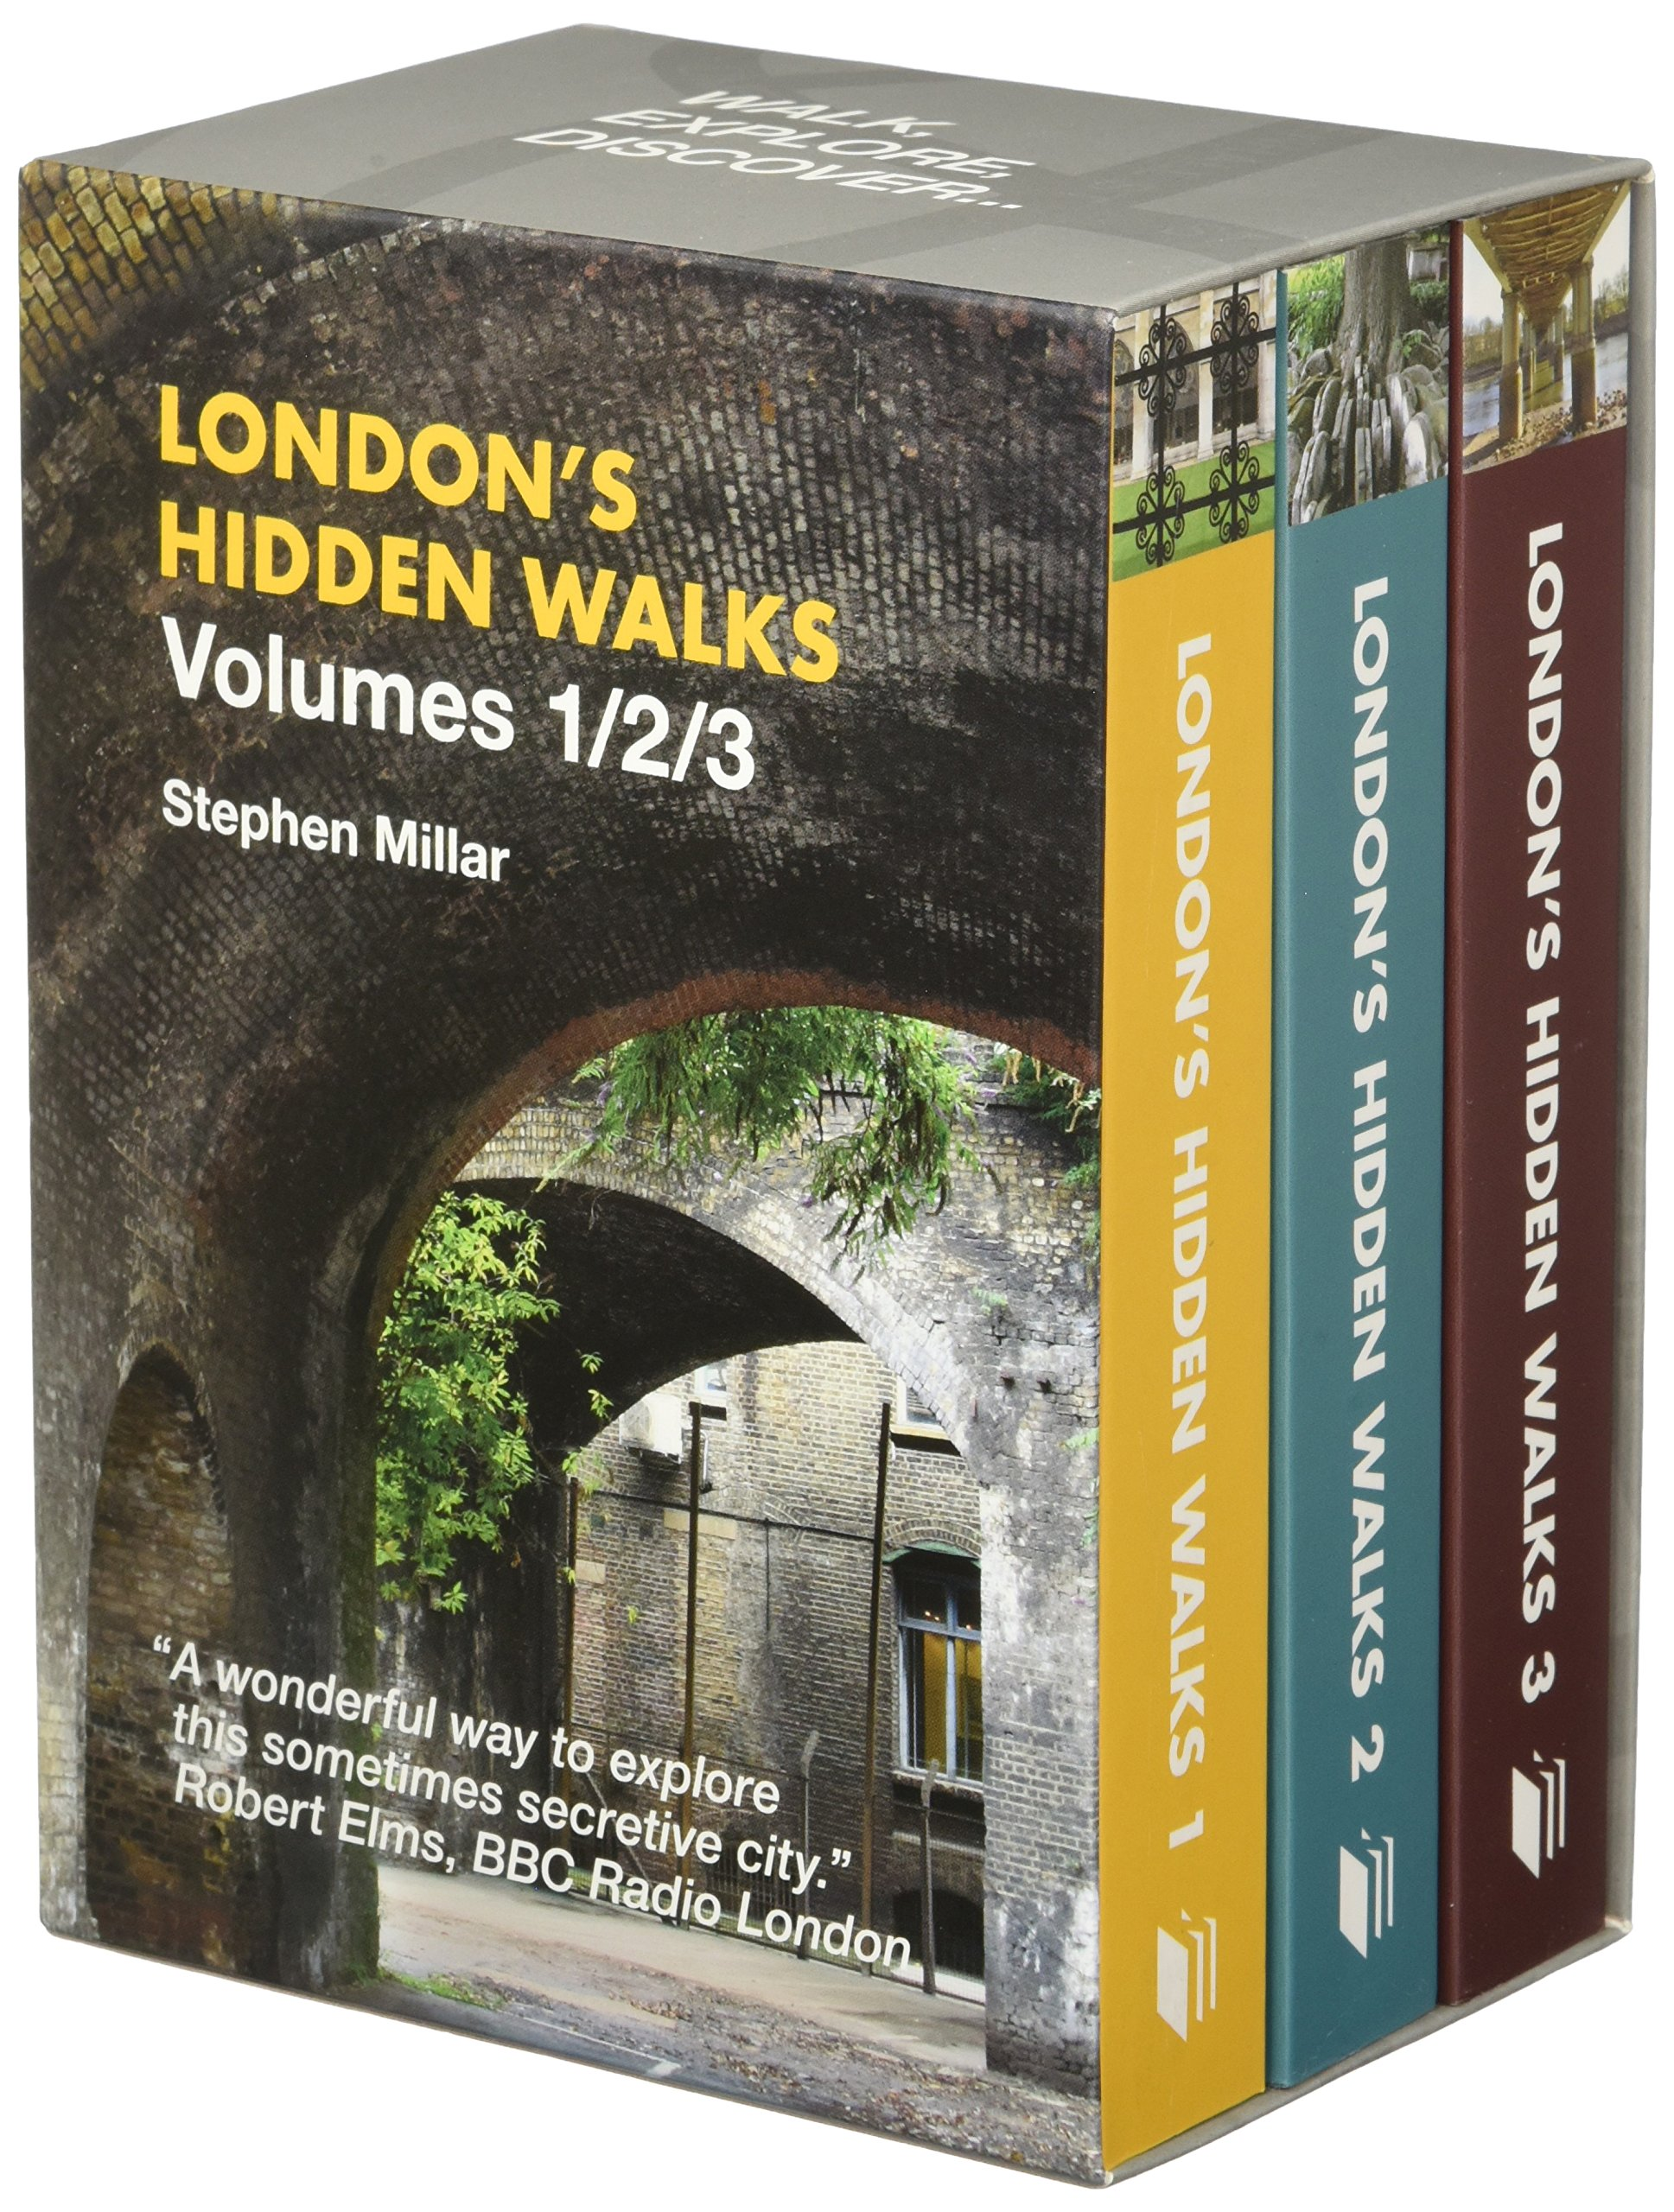 Londons Hidden Walks Volumes 1 3: Stephen Millar: 9781902910543:  Amazon.com: Books